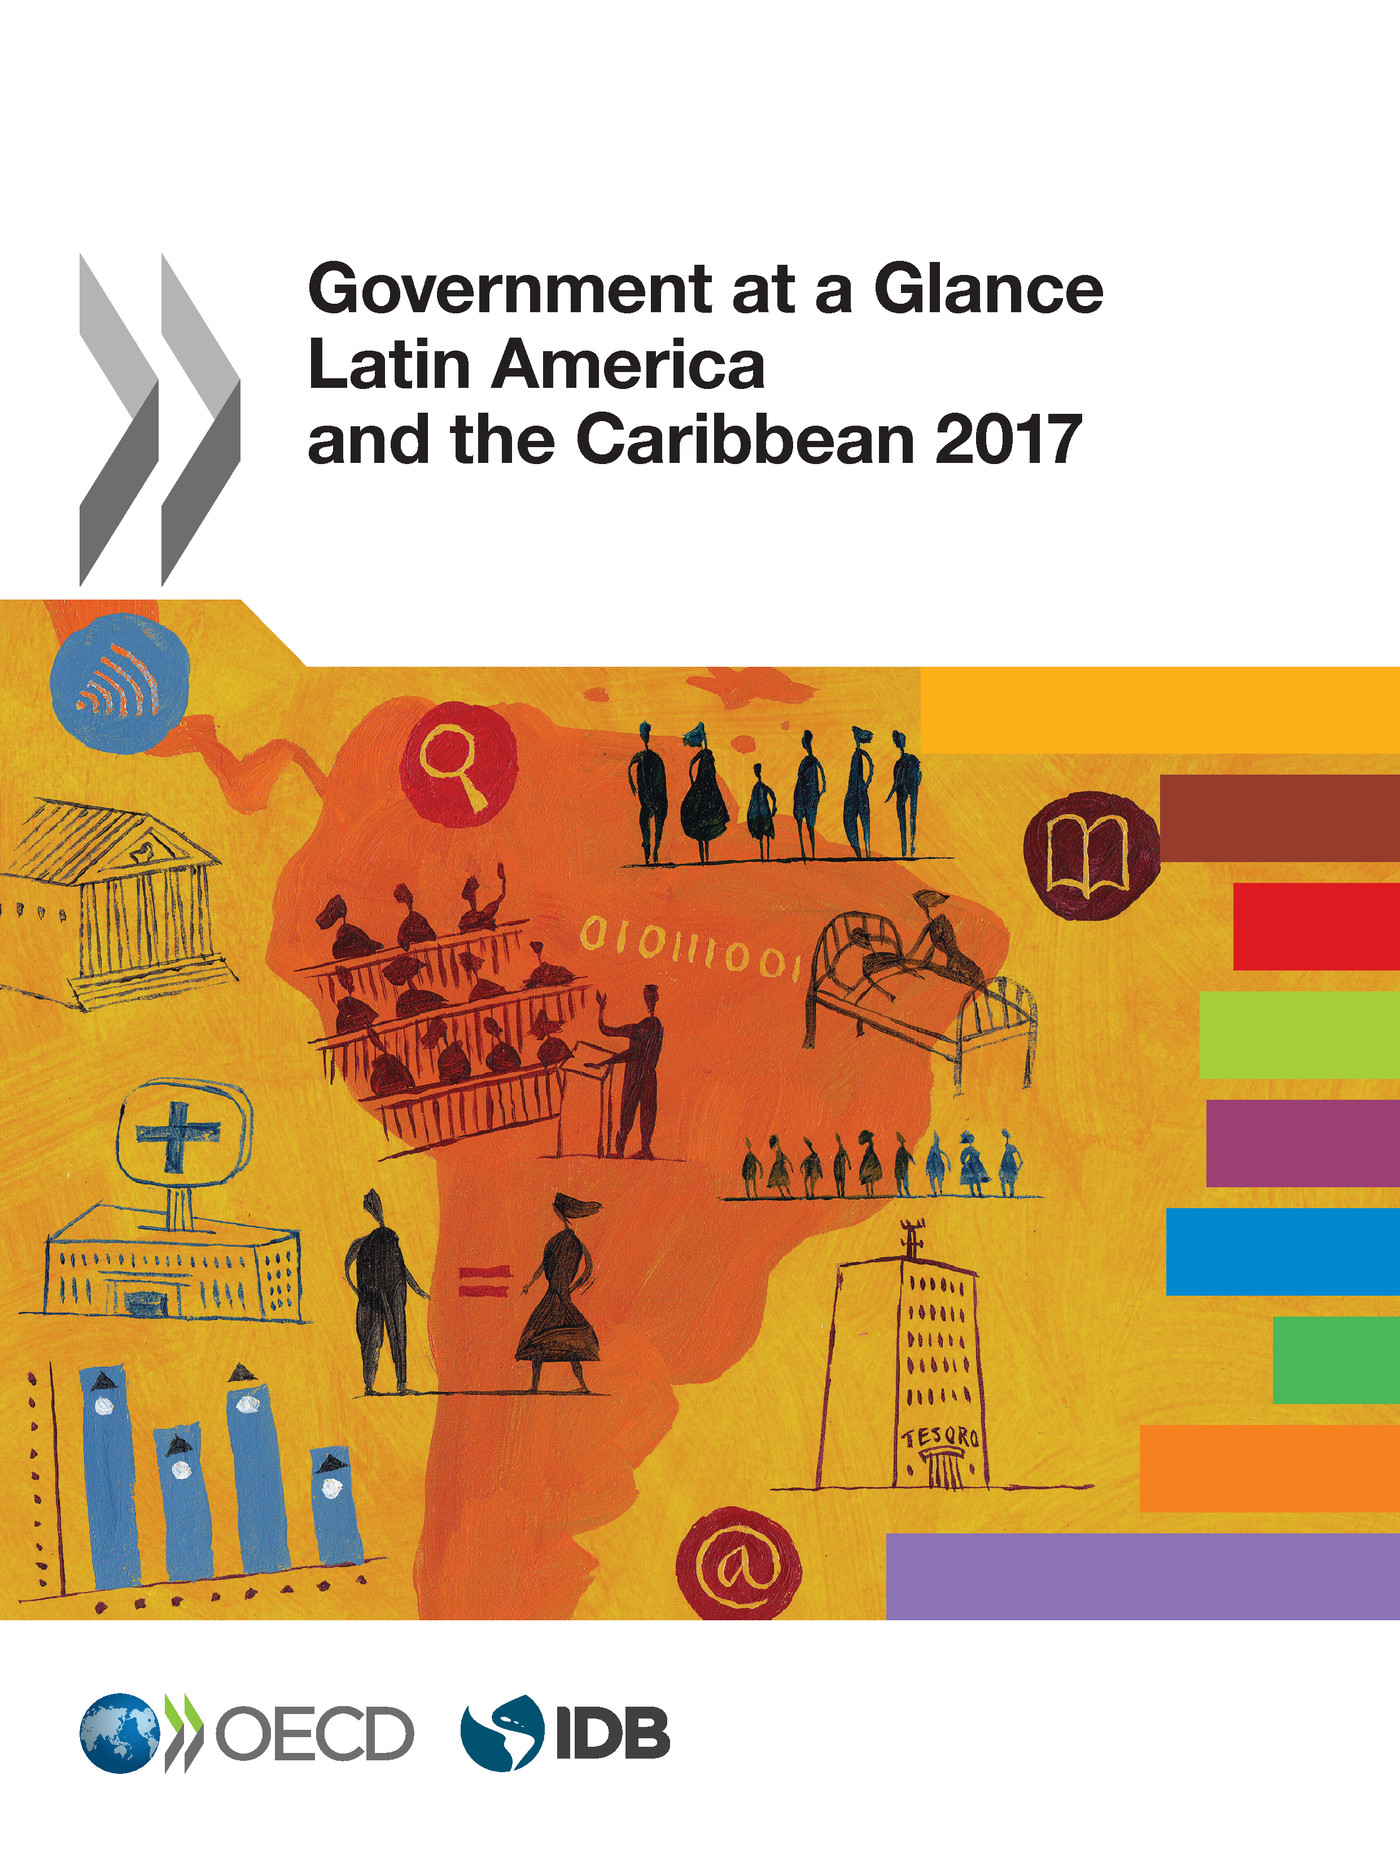 Government at a Glance: Latin America and the Caribbean 2017 De  Collectif - OCDE / OECD